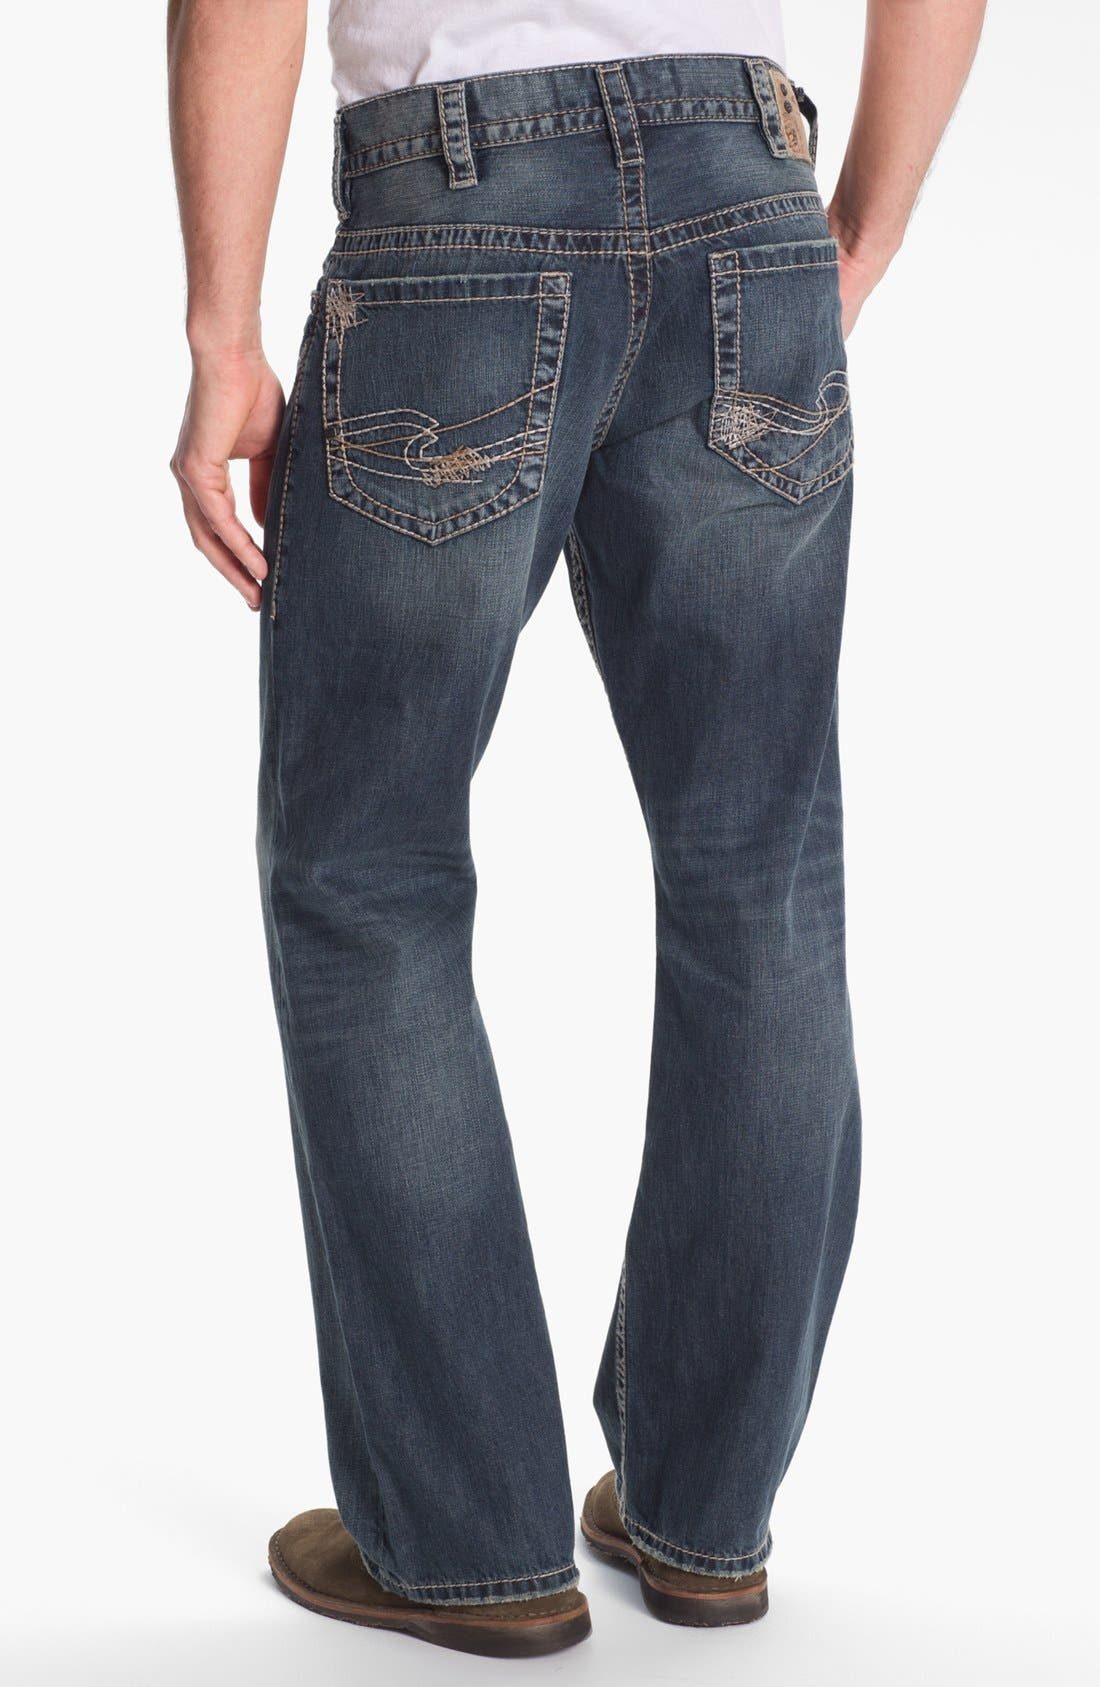 Alternate Image 1 Selected - Silver Jeans Co. 'Gordie' Bootcut Jeans (Indigo)